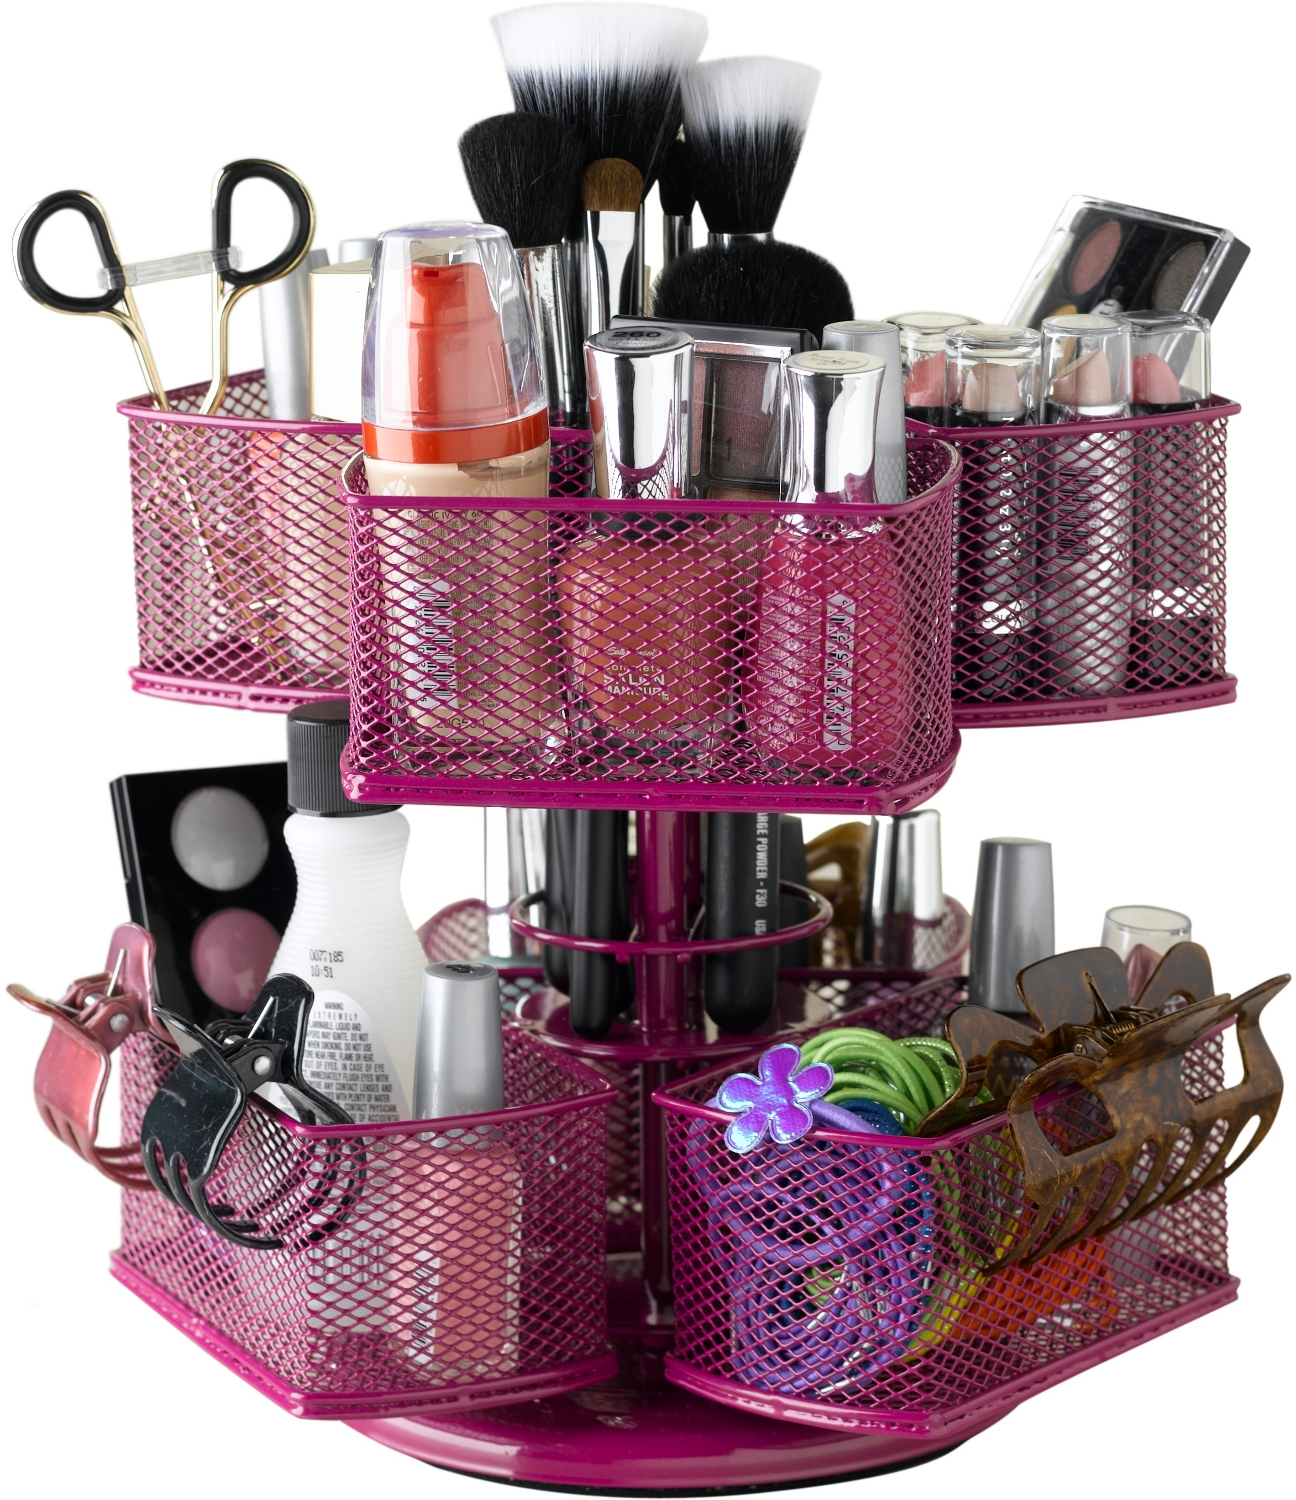 Nifty Home Products Rose Make-Up Carousel